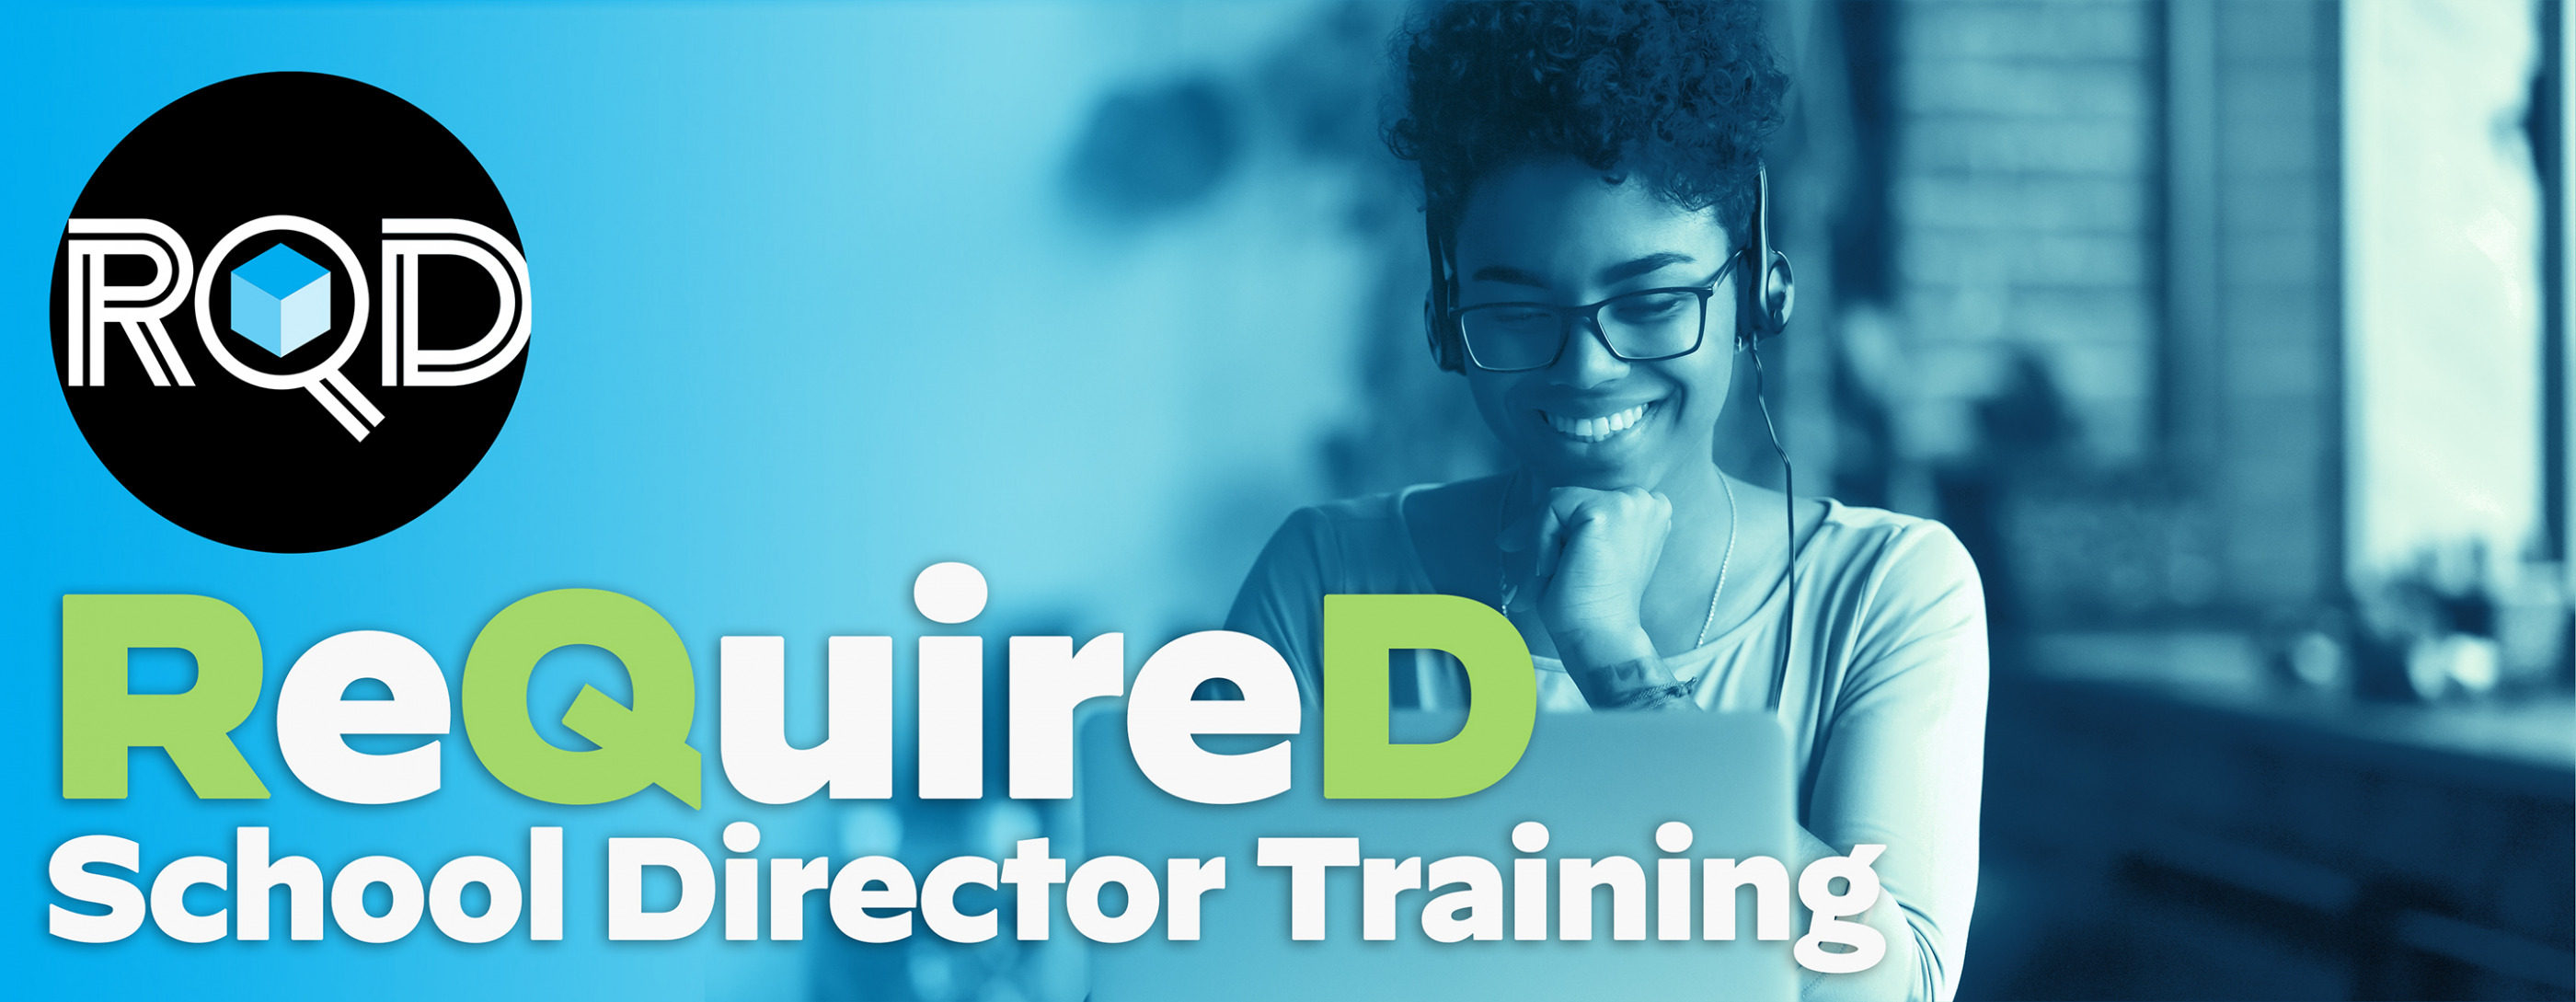 Learn about Required School Director Training opportunities